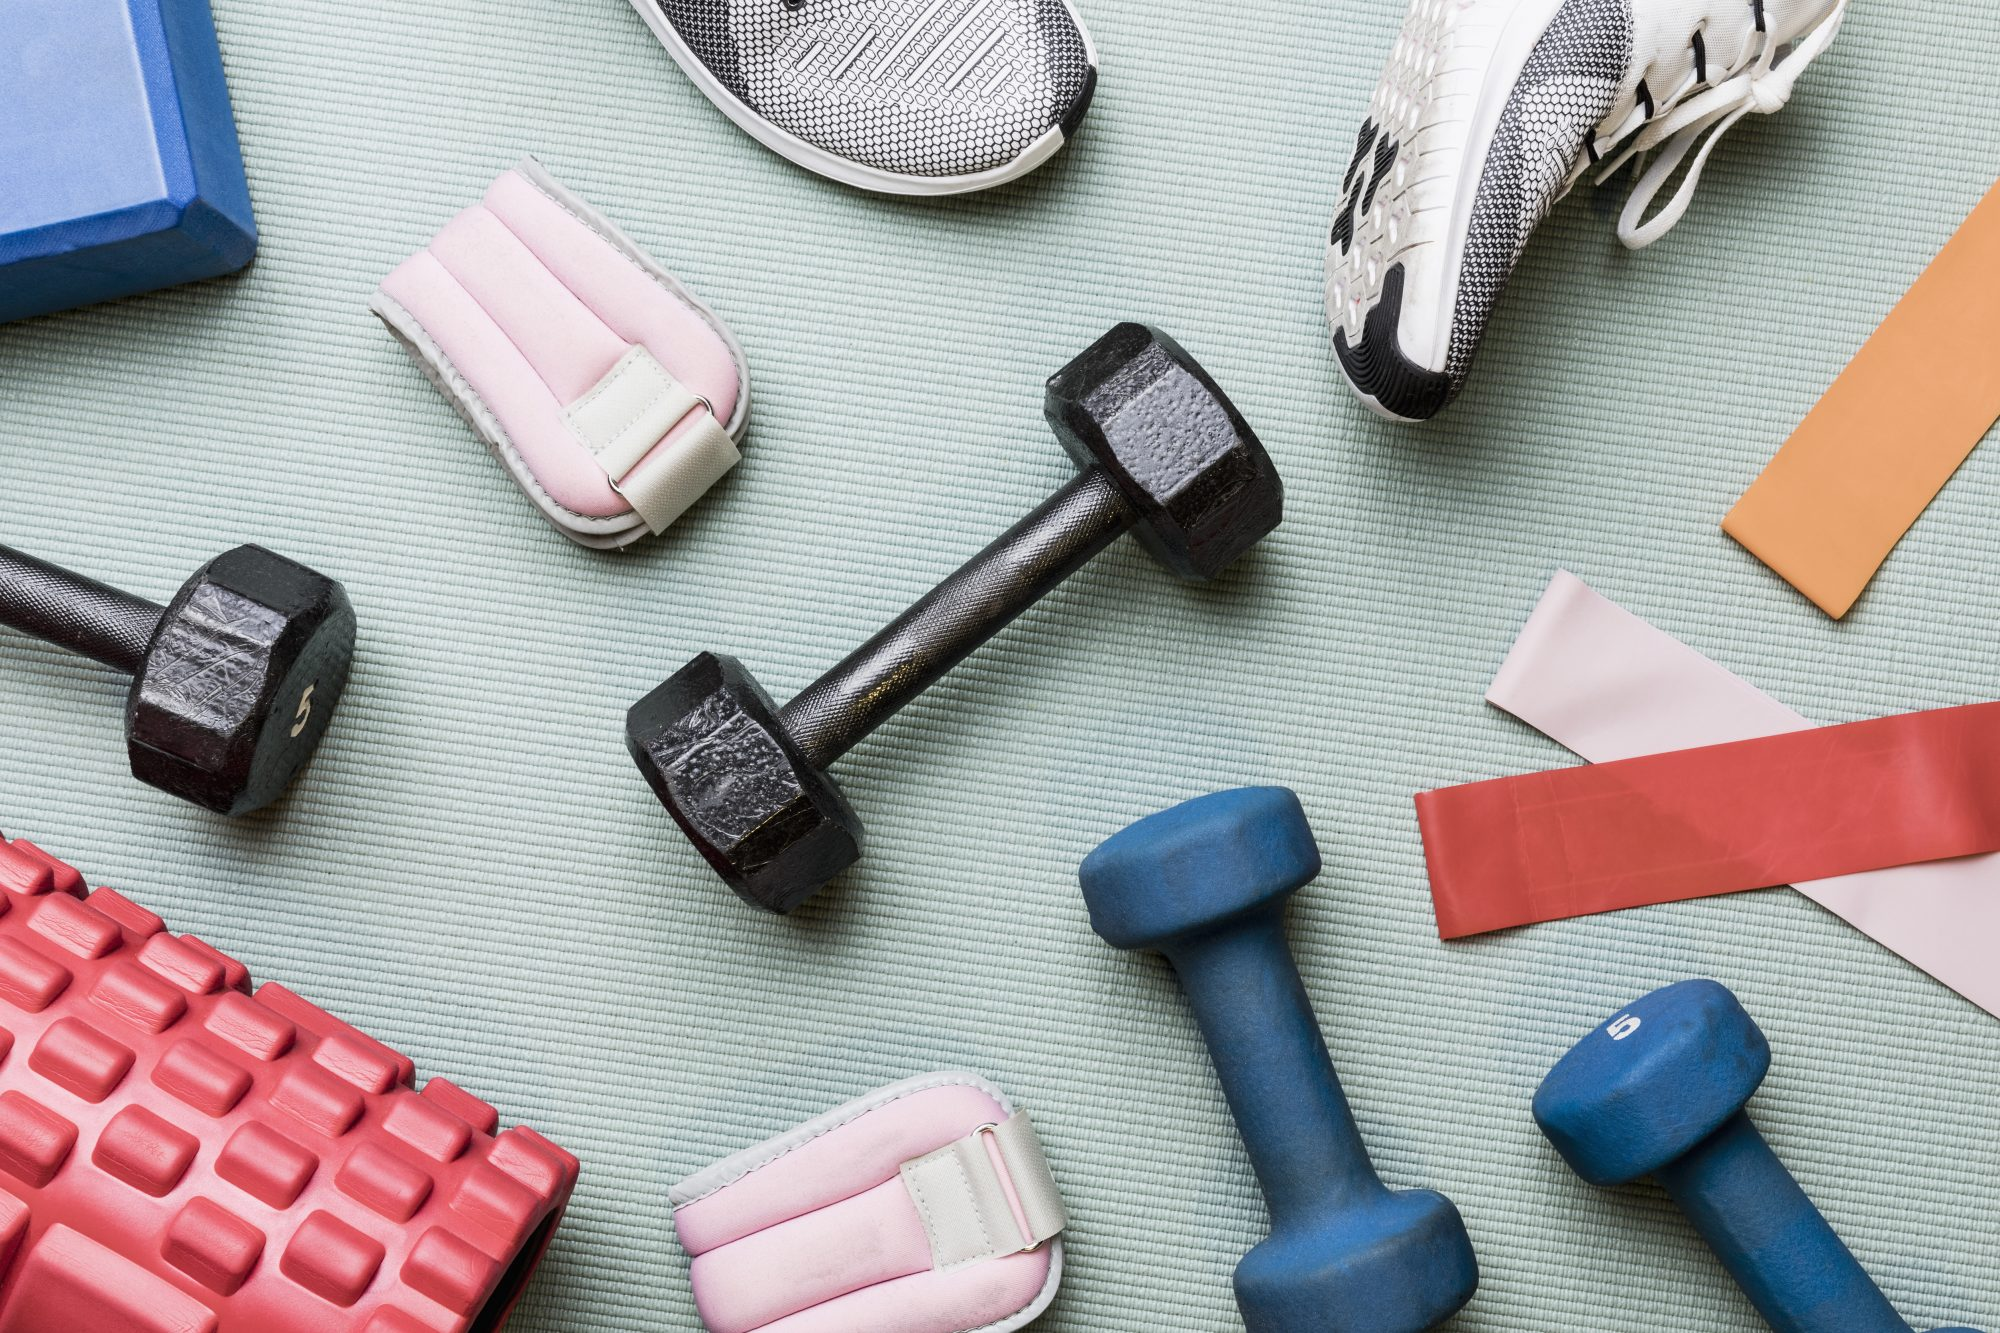 at-home gym equiptment